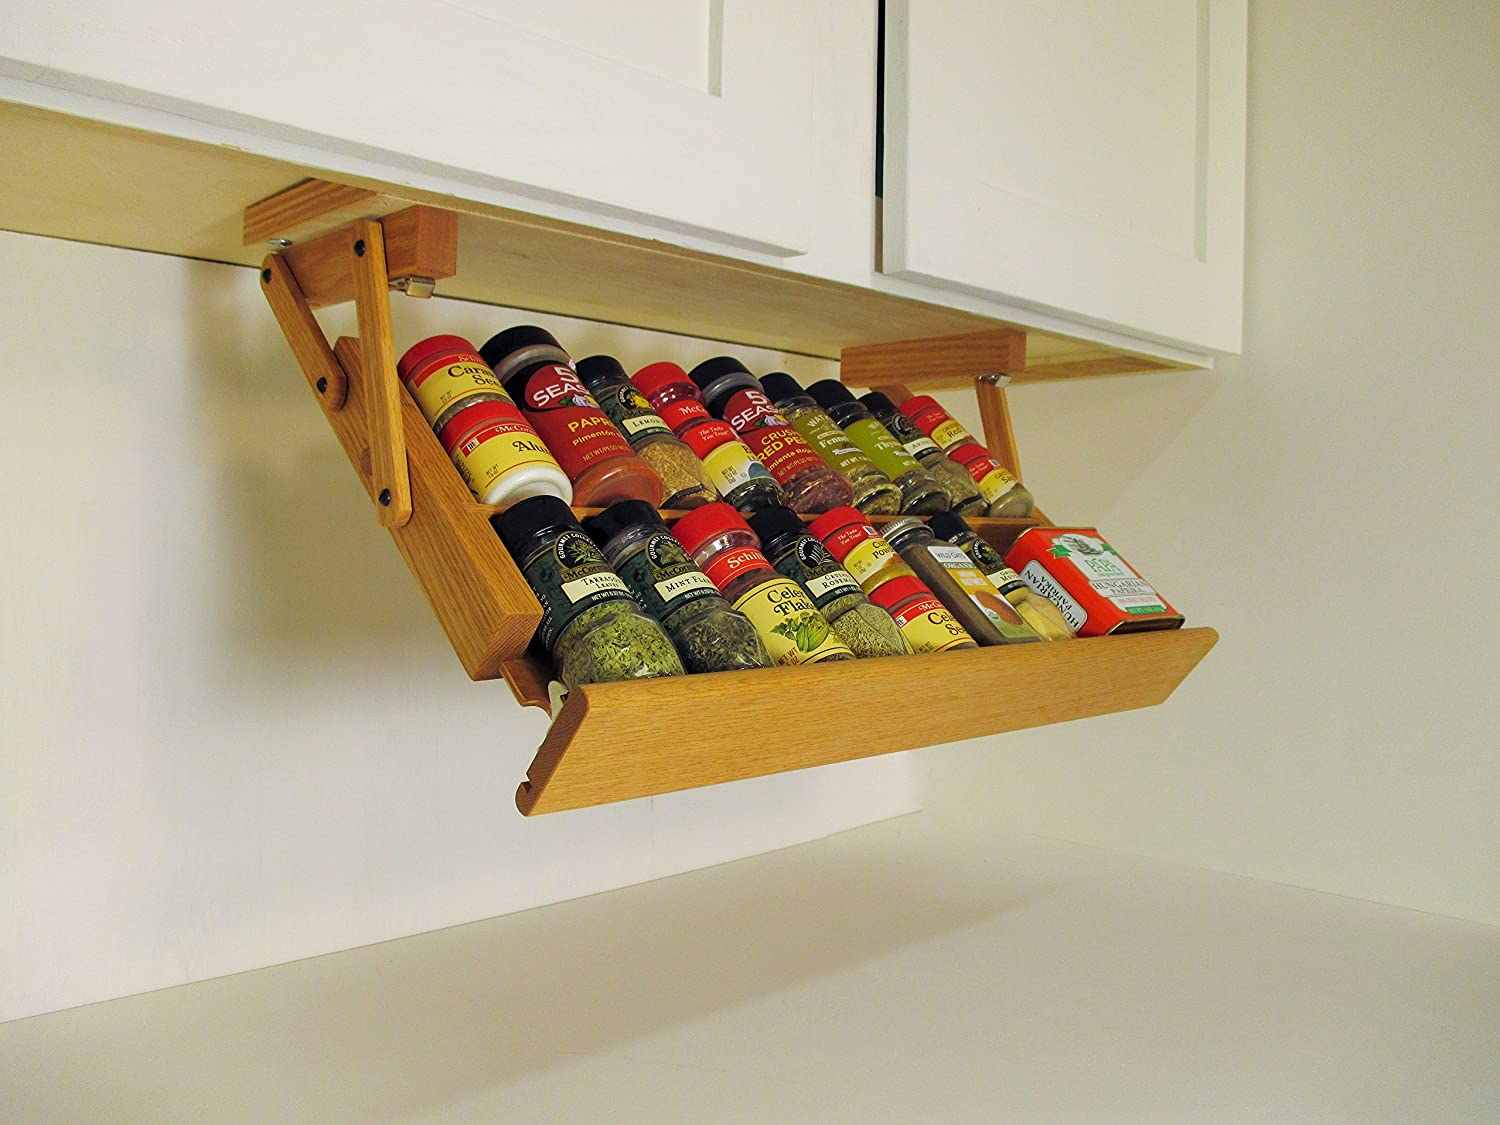 Amazon.com: Ultimate Kitchen Storage Under Cabinet Spice Rack, Handmade  Hardwood, Holds 16 Large or 32 Small Spice Containers: Kitchen & Dining